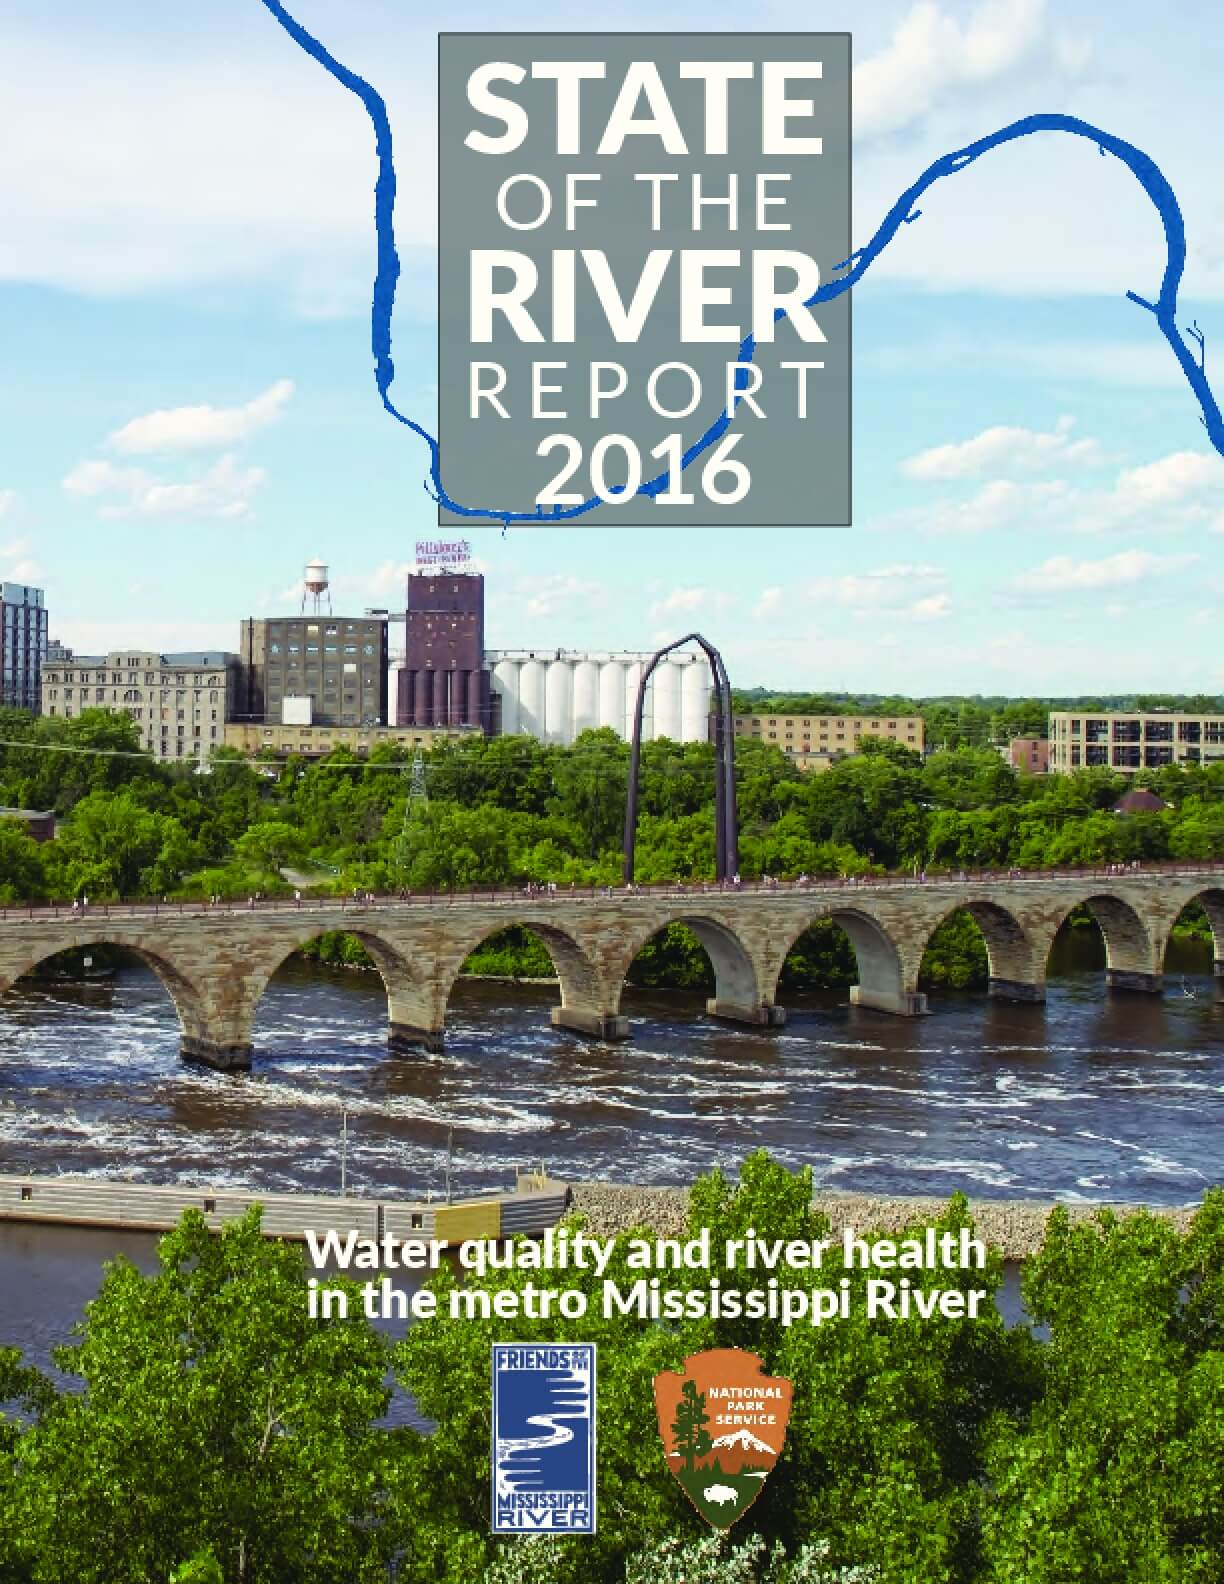 State of the River Report 2016: Water Quality and River Health in the Metro Mississippi River